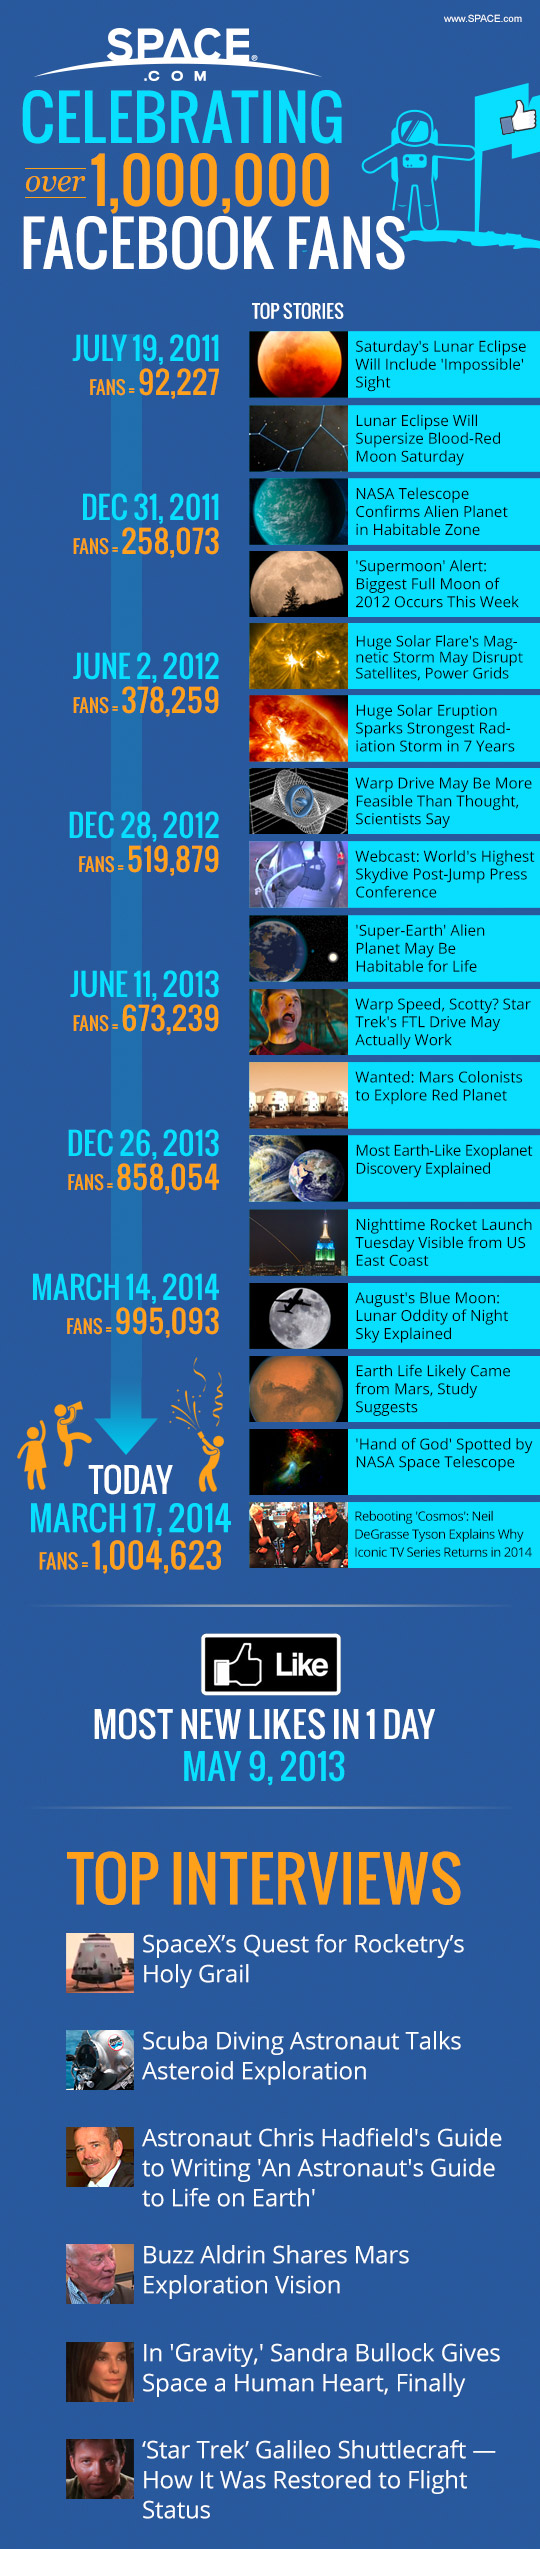 You Really Like Us! A Cosmic Thank You to Our 1 Million+ Facebook Fans (Infographic)